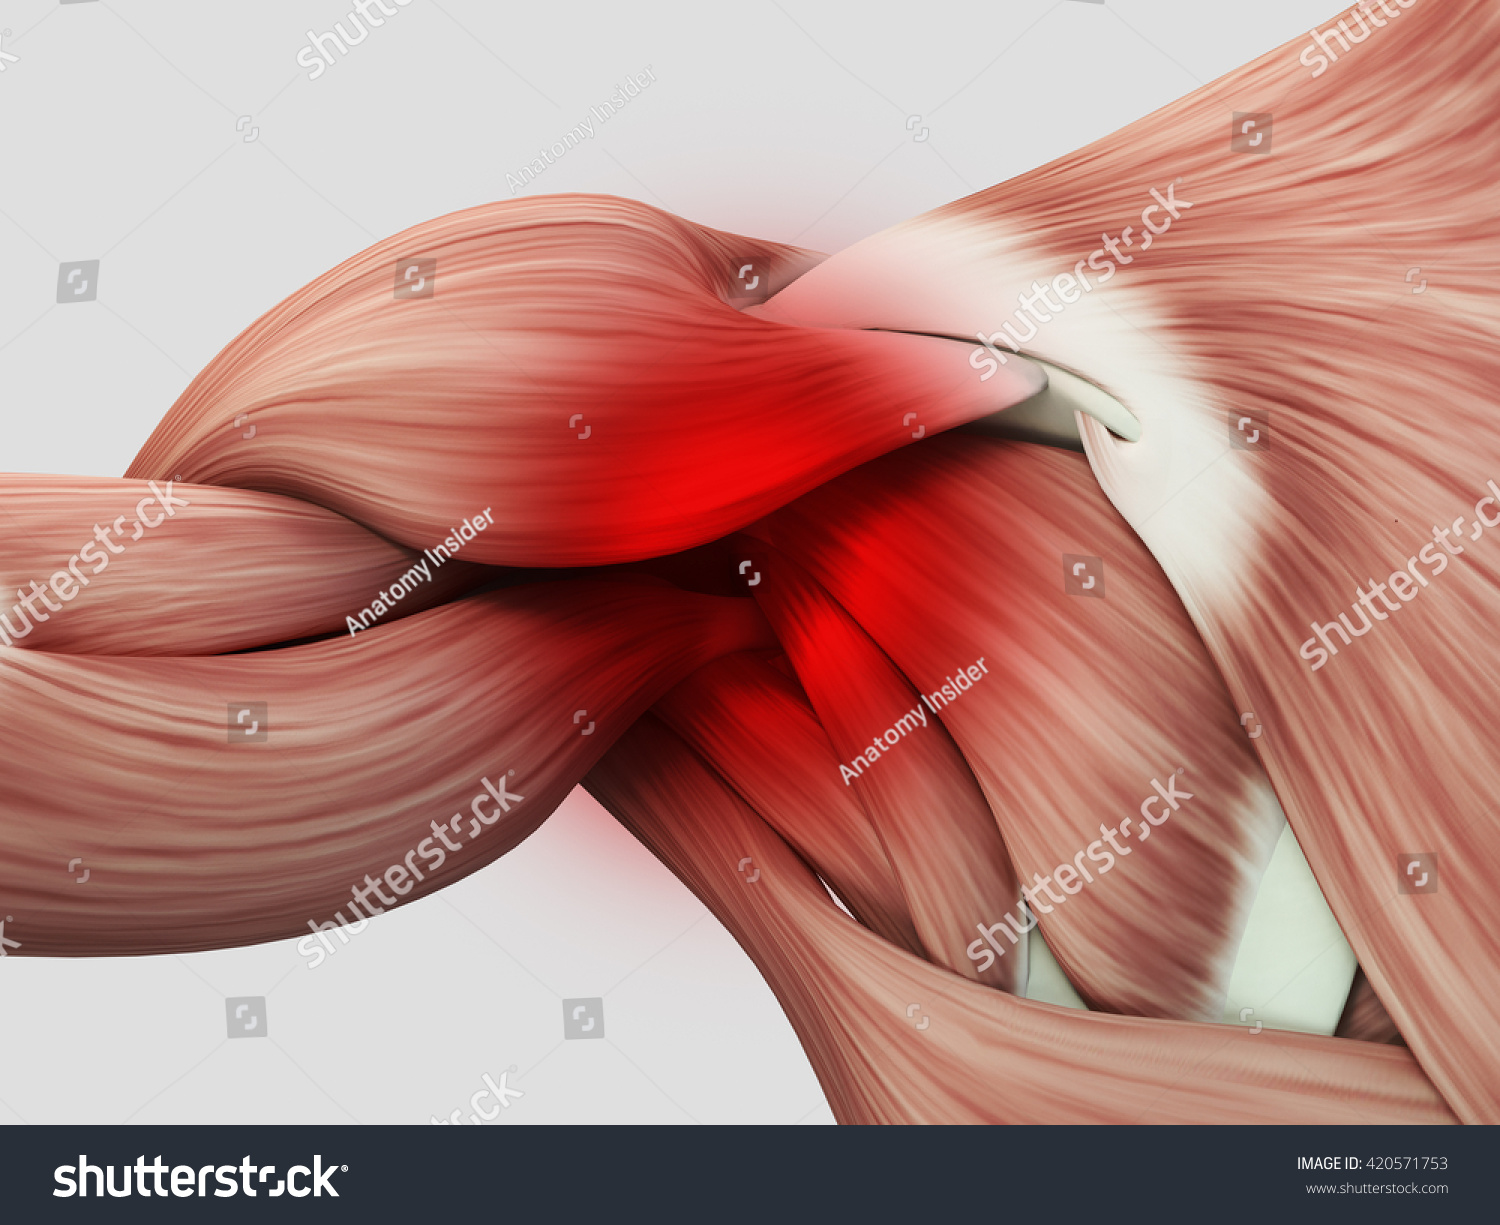 Human Anatomy Muscle Shoulder Pain Injury Stock Illustration ...